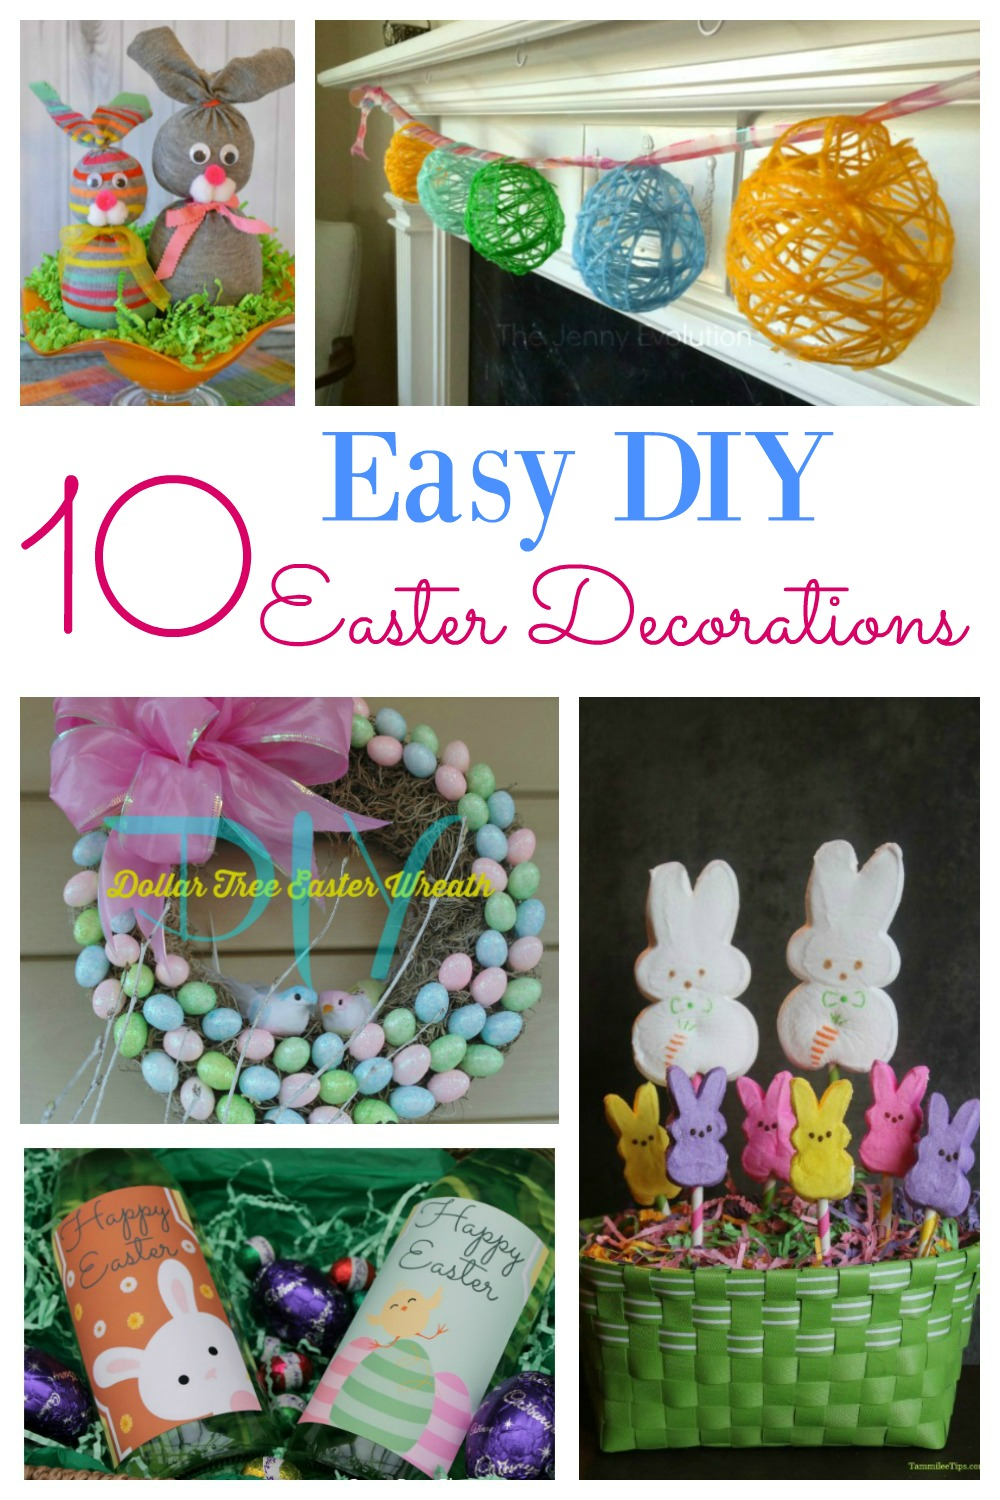 How to make 10 Easy DIY Easter decorations for the home. Including dollar store creations, center pieces, table settings and more. These ideas are simple to replicate and will look beautiful in your home.